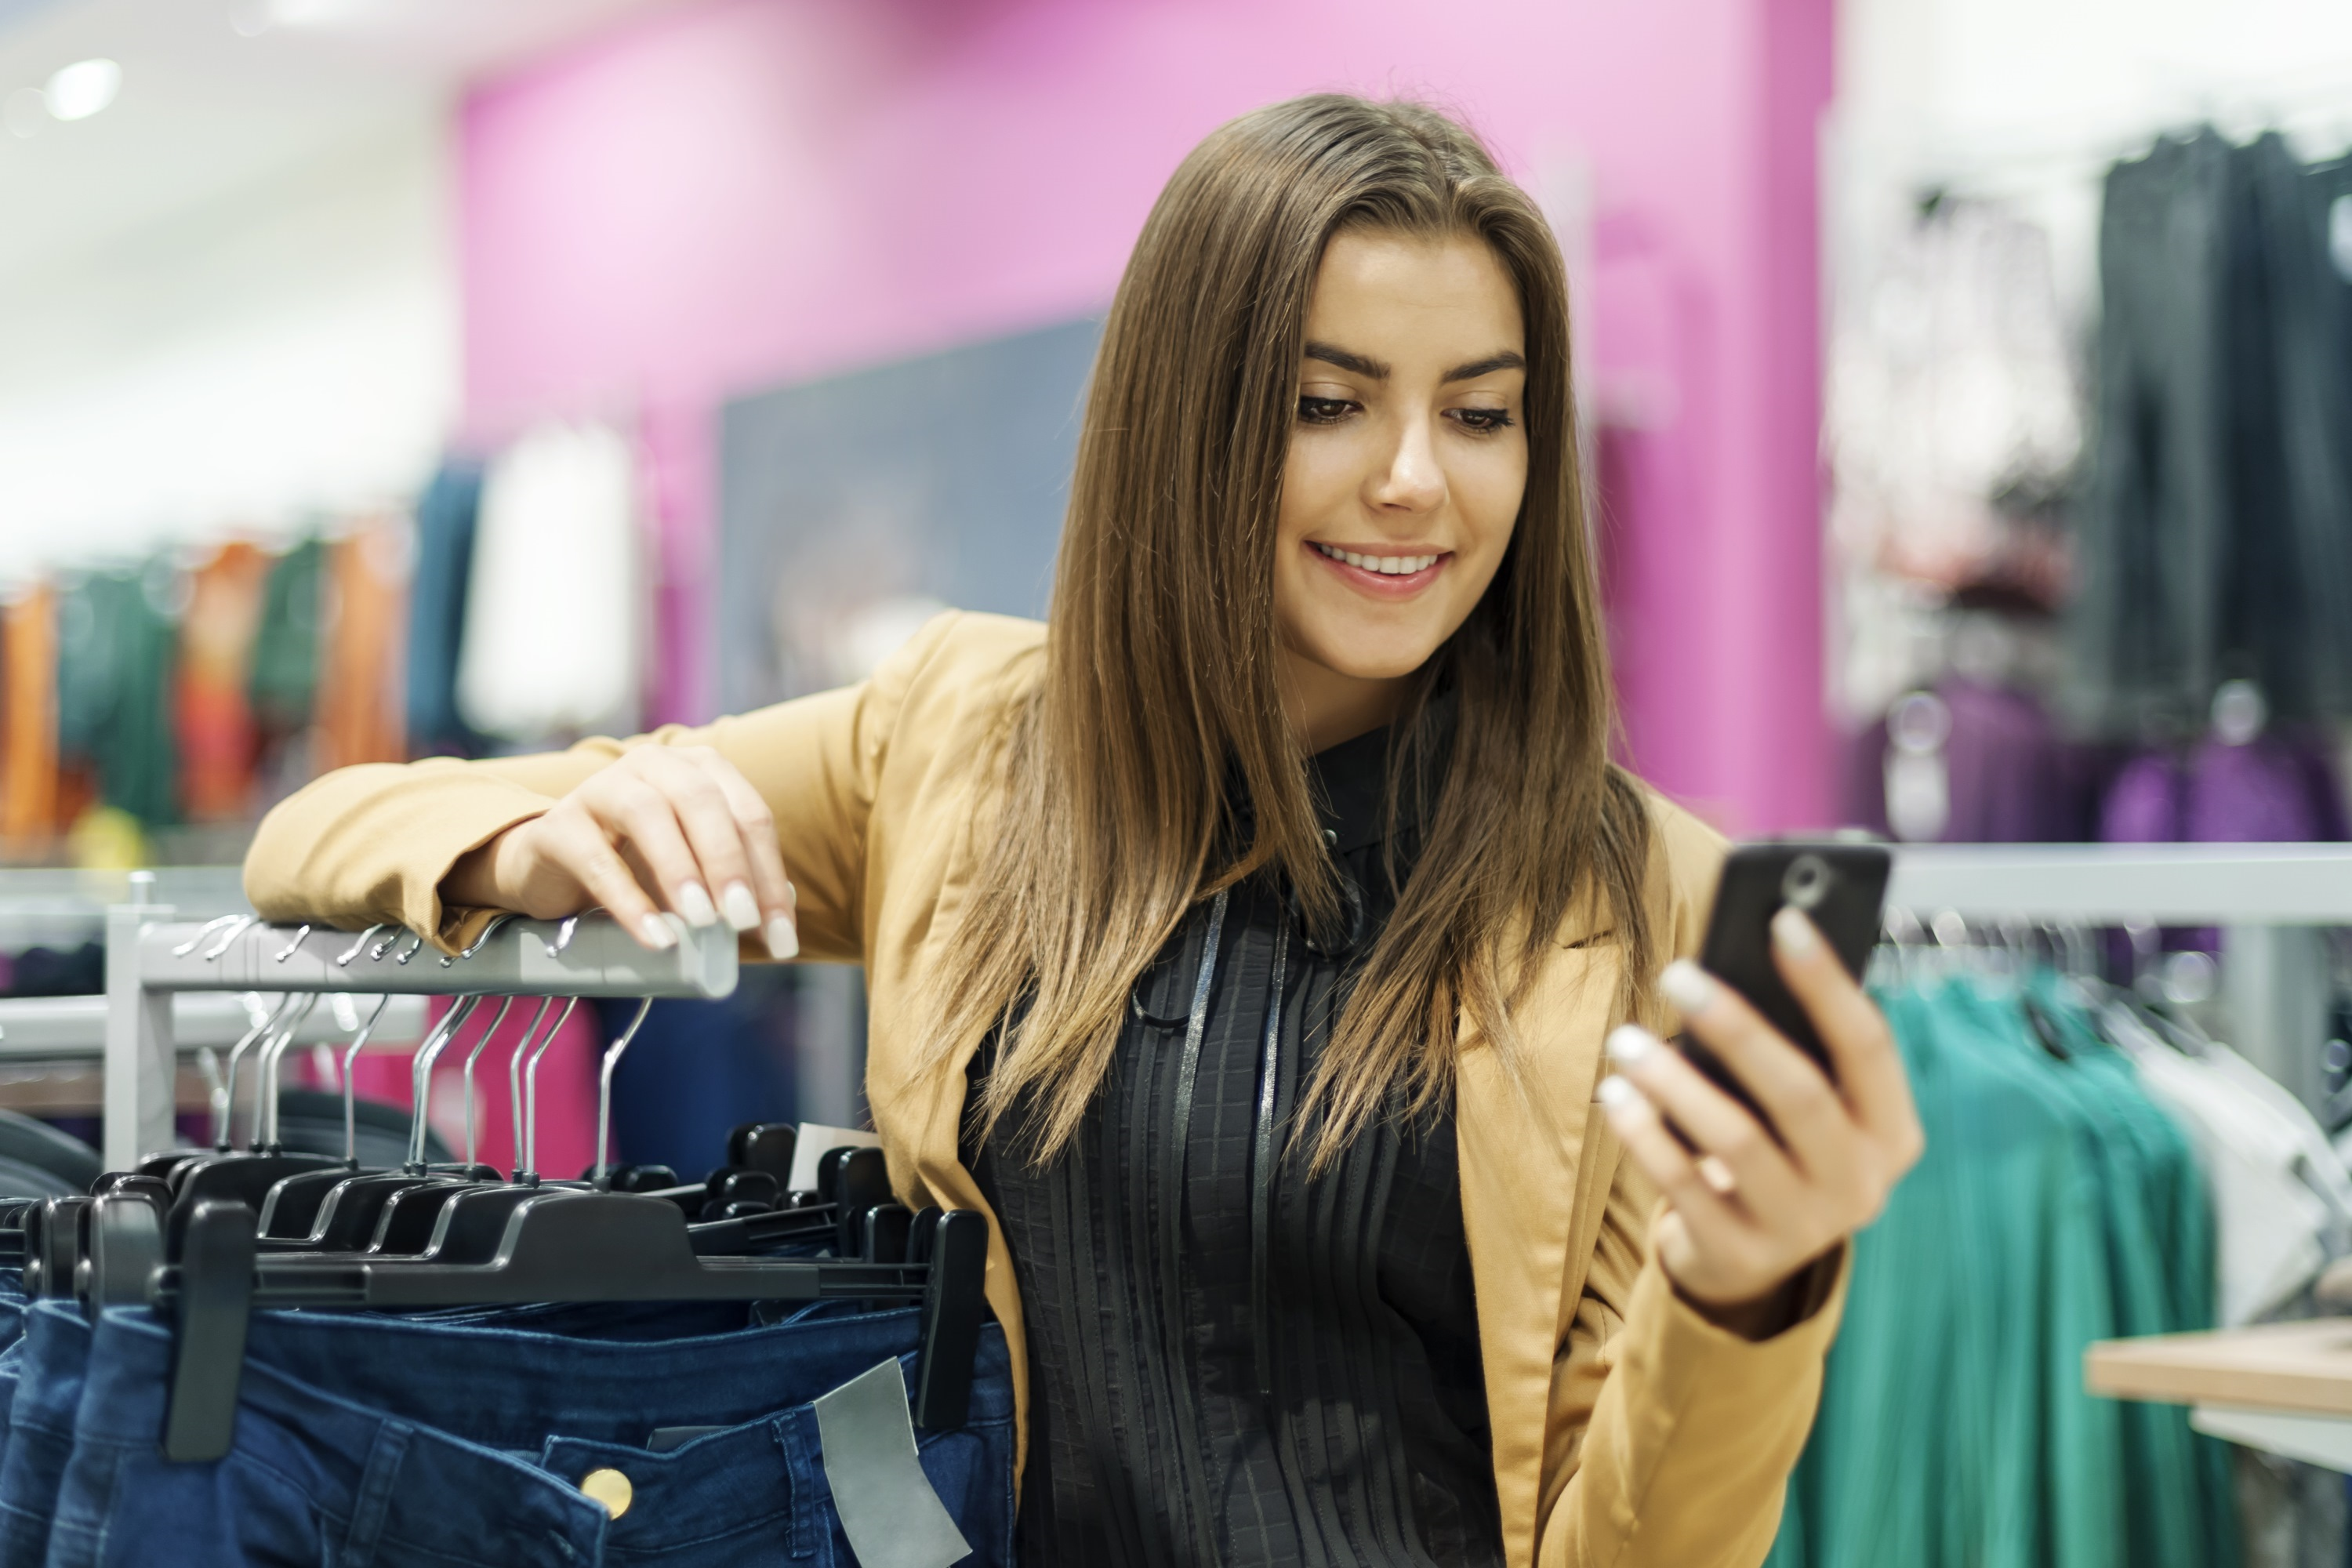 Shoppers Researching, if not Buying, on Mobile